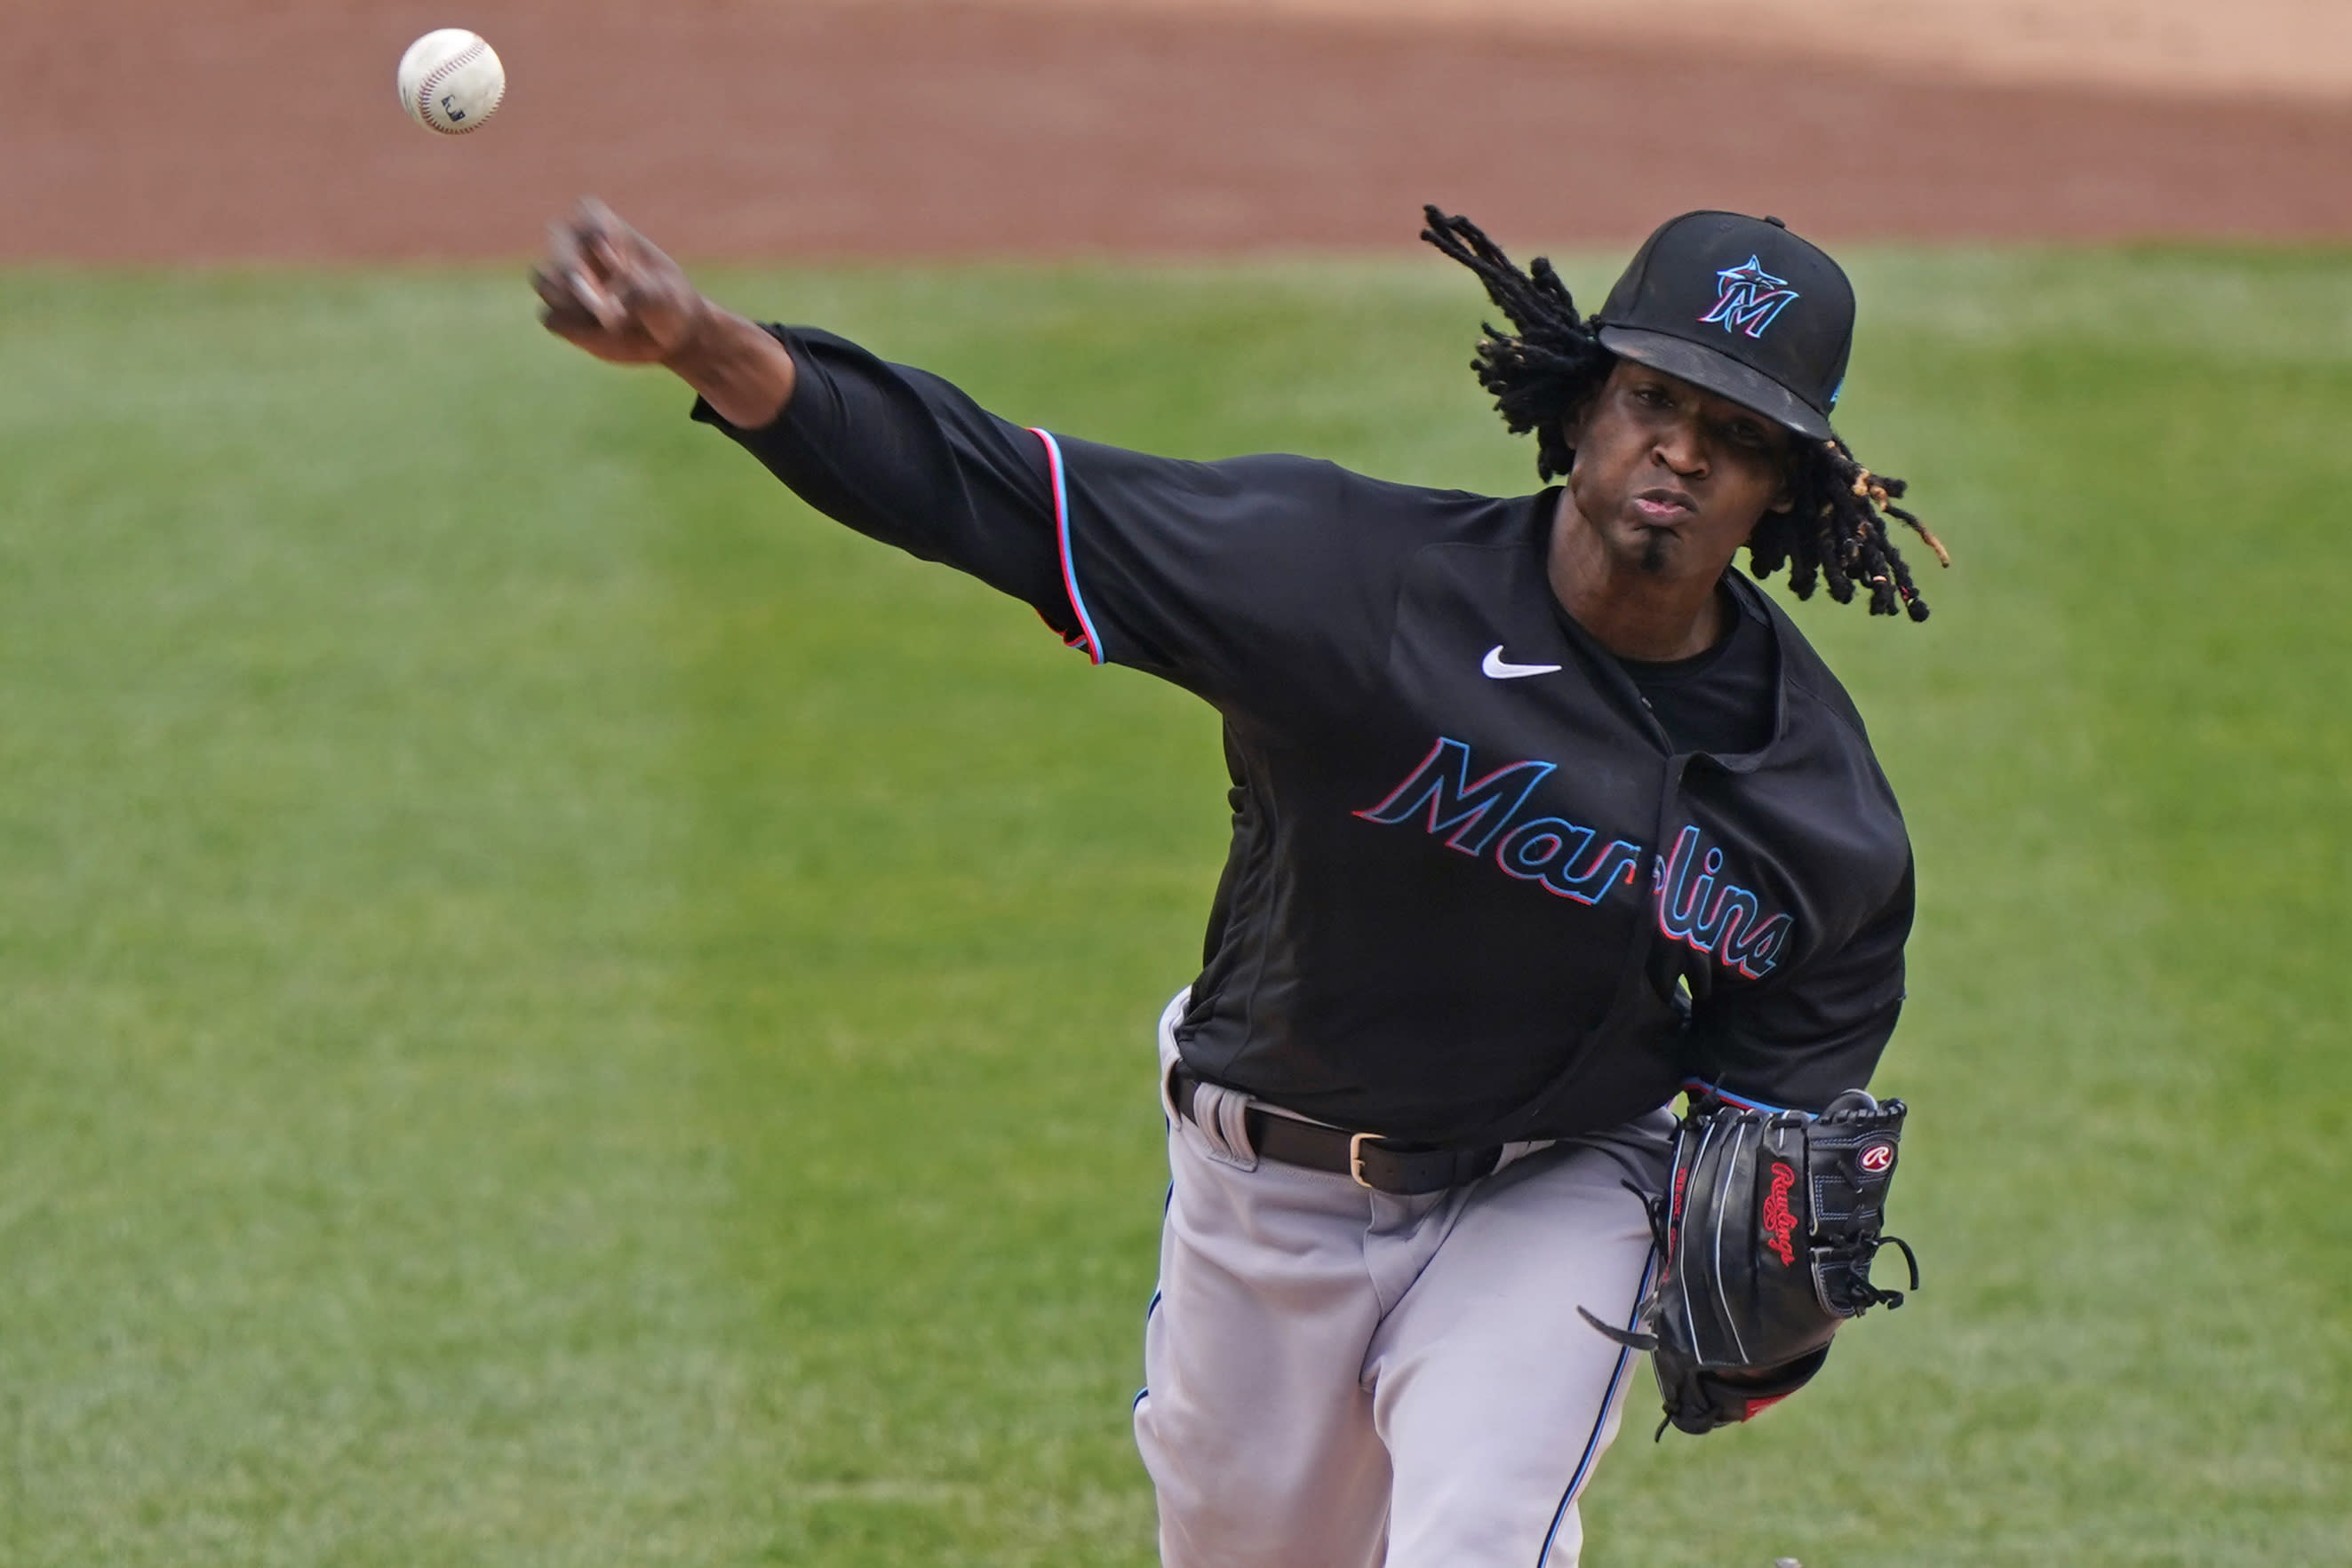 Miami Marlins starting pitcher Jose Urena delivers during the first inning of a baseball gam against the New York Yankees, Sunday, Sept. 27, 2020, at Yankee Stadium in New York. (AP Photo/Kathy Willens)